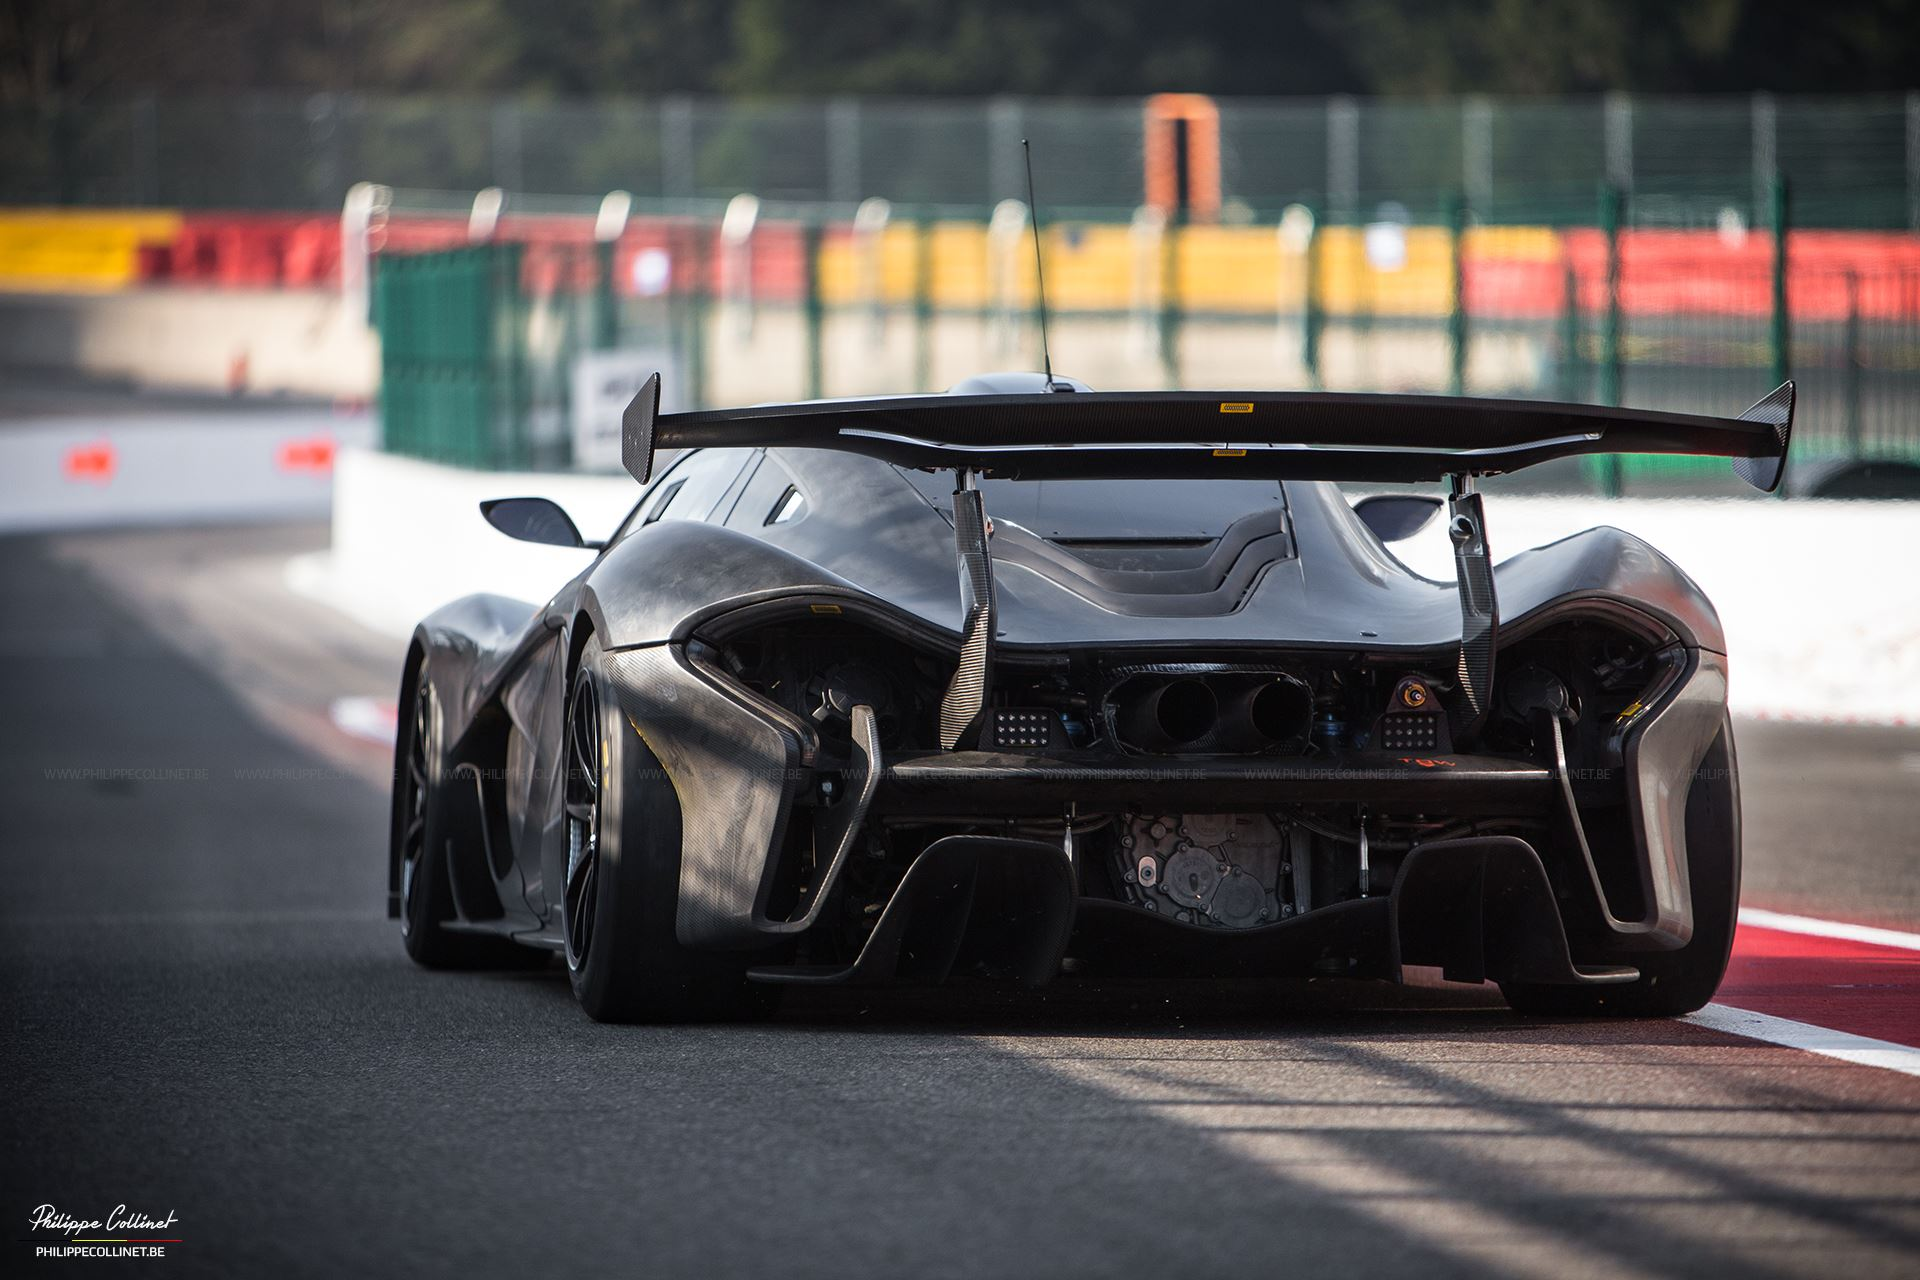 mclaren p1 gtr headlines pure mclaren 2015 at spa gtspirit. Black Bedroom Furniture Sets. Home Design Ideas